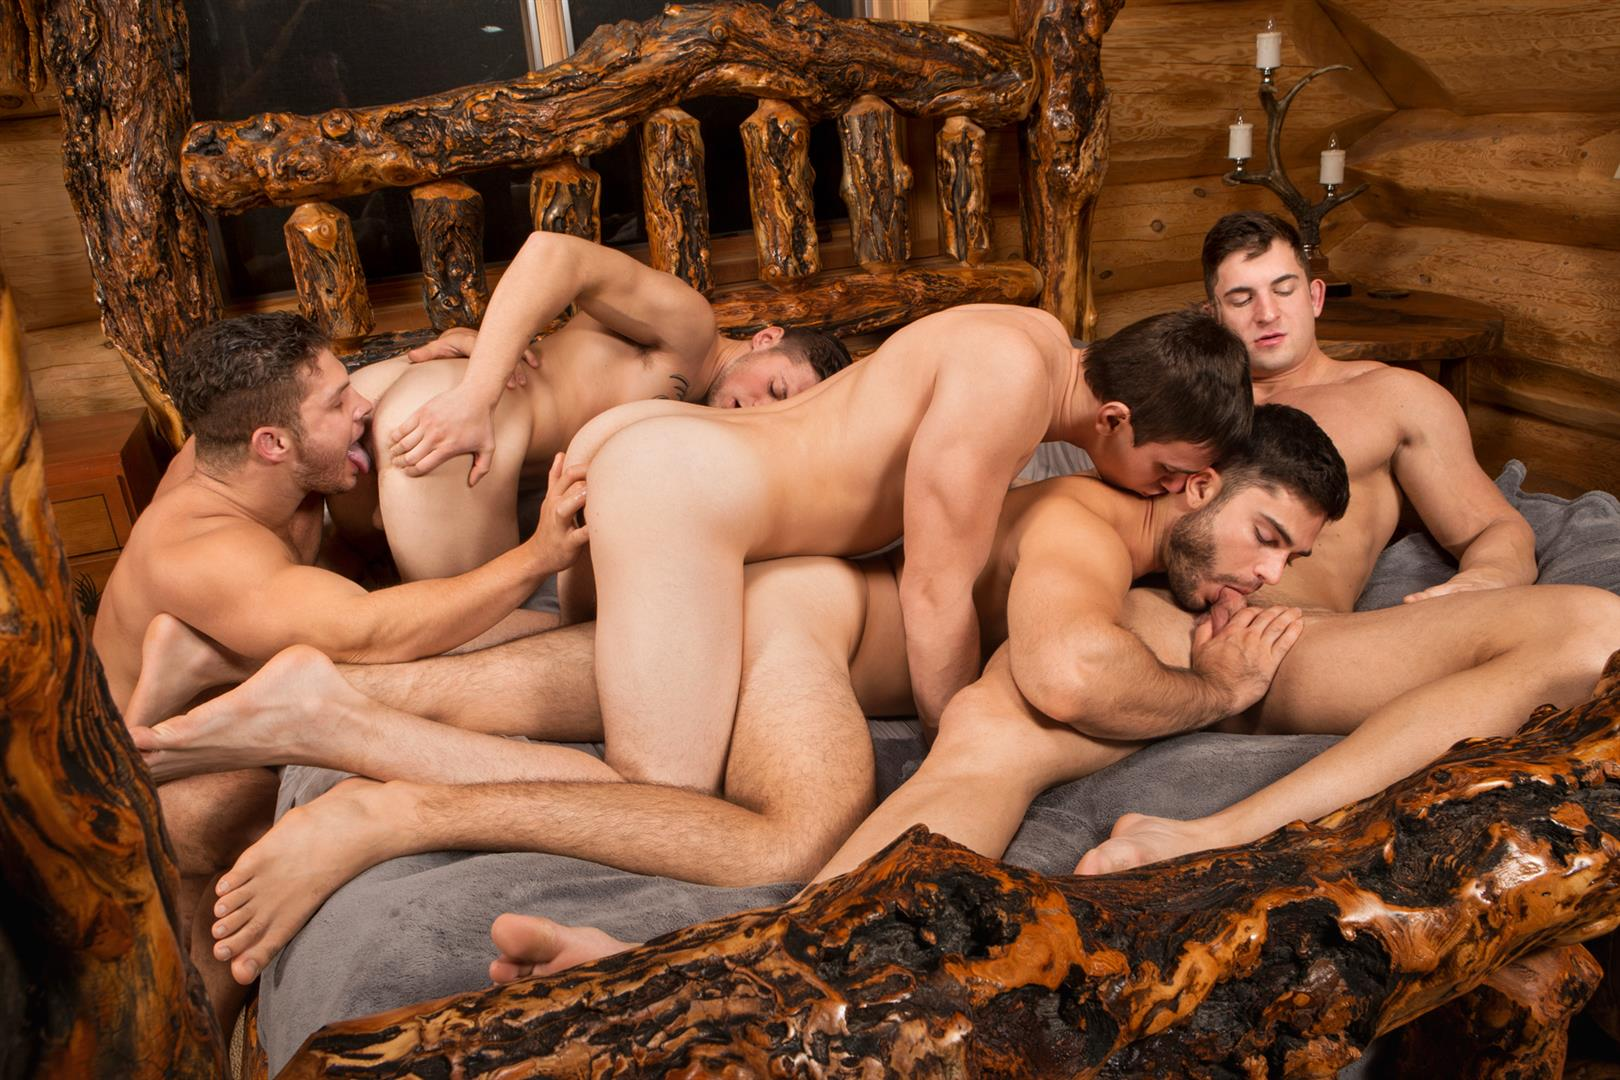 Sean Cody Winter Getaway Day 1 Big Dick Hunks Fucking Bareback Amateur Gay Porn 11 Sean Cody Takes The Boys On A 8 Day Bareback Winter Getaway